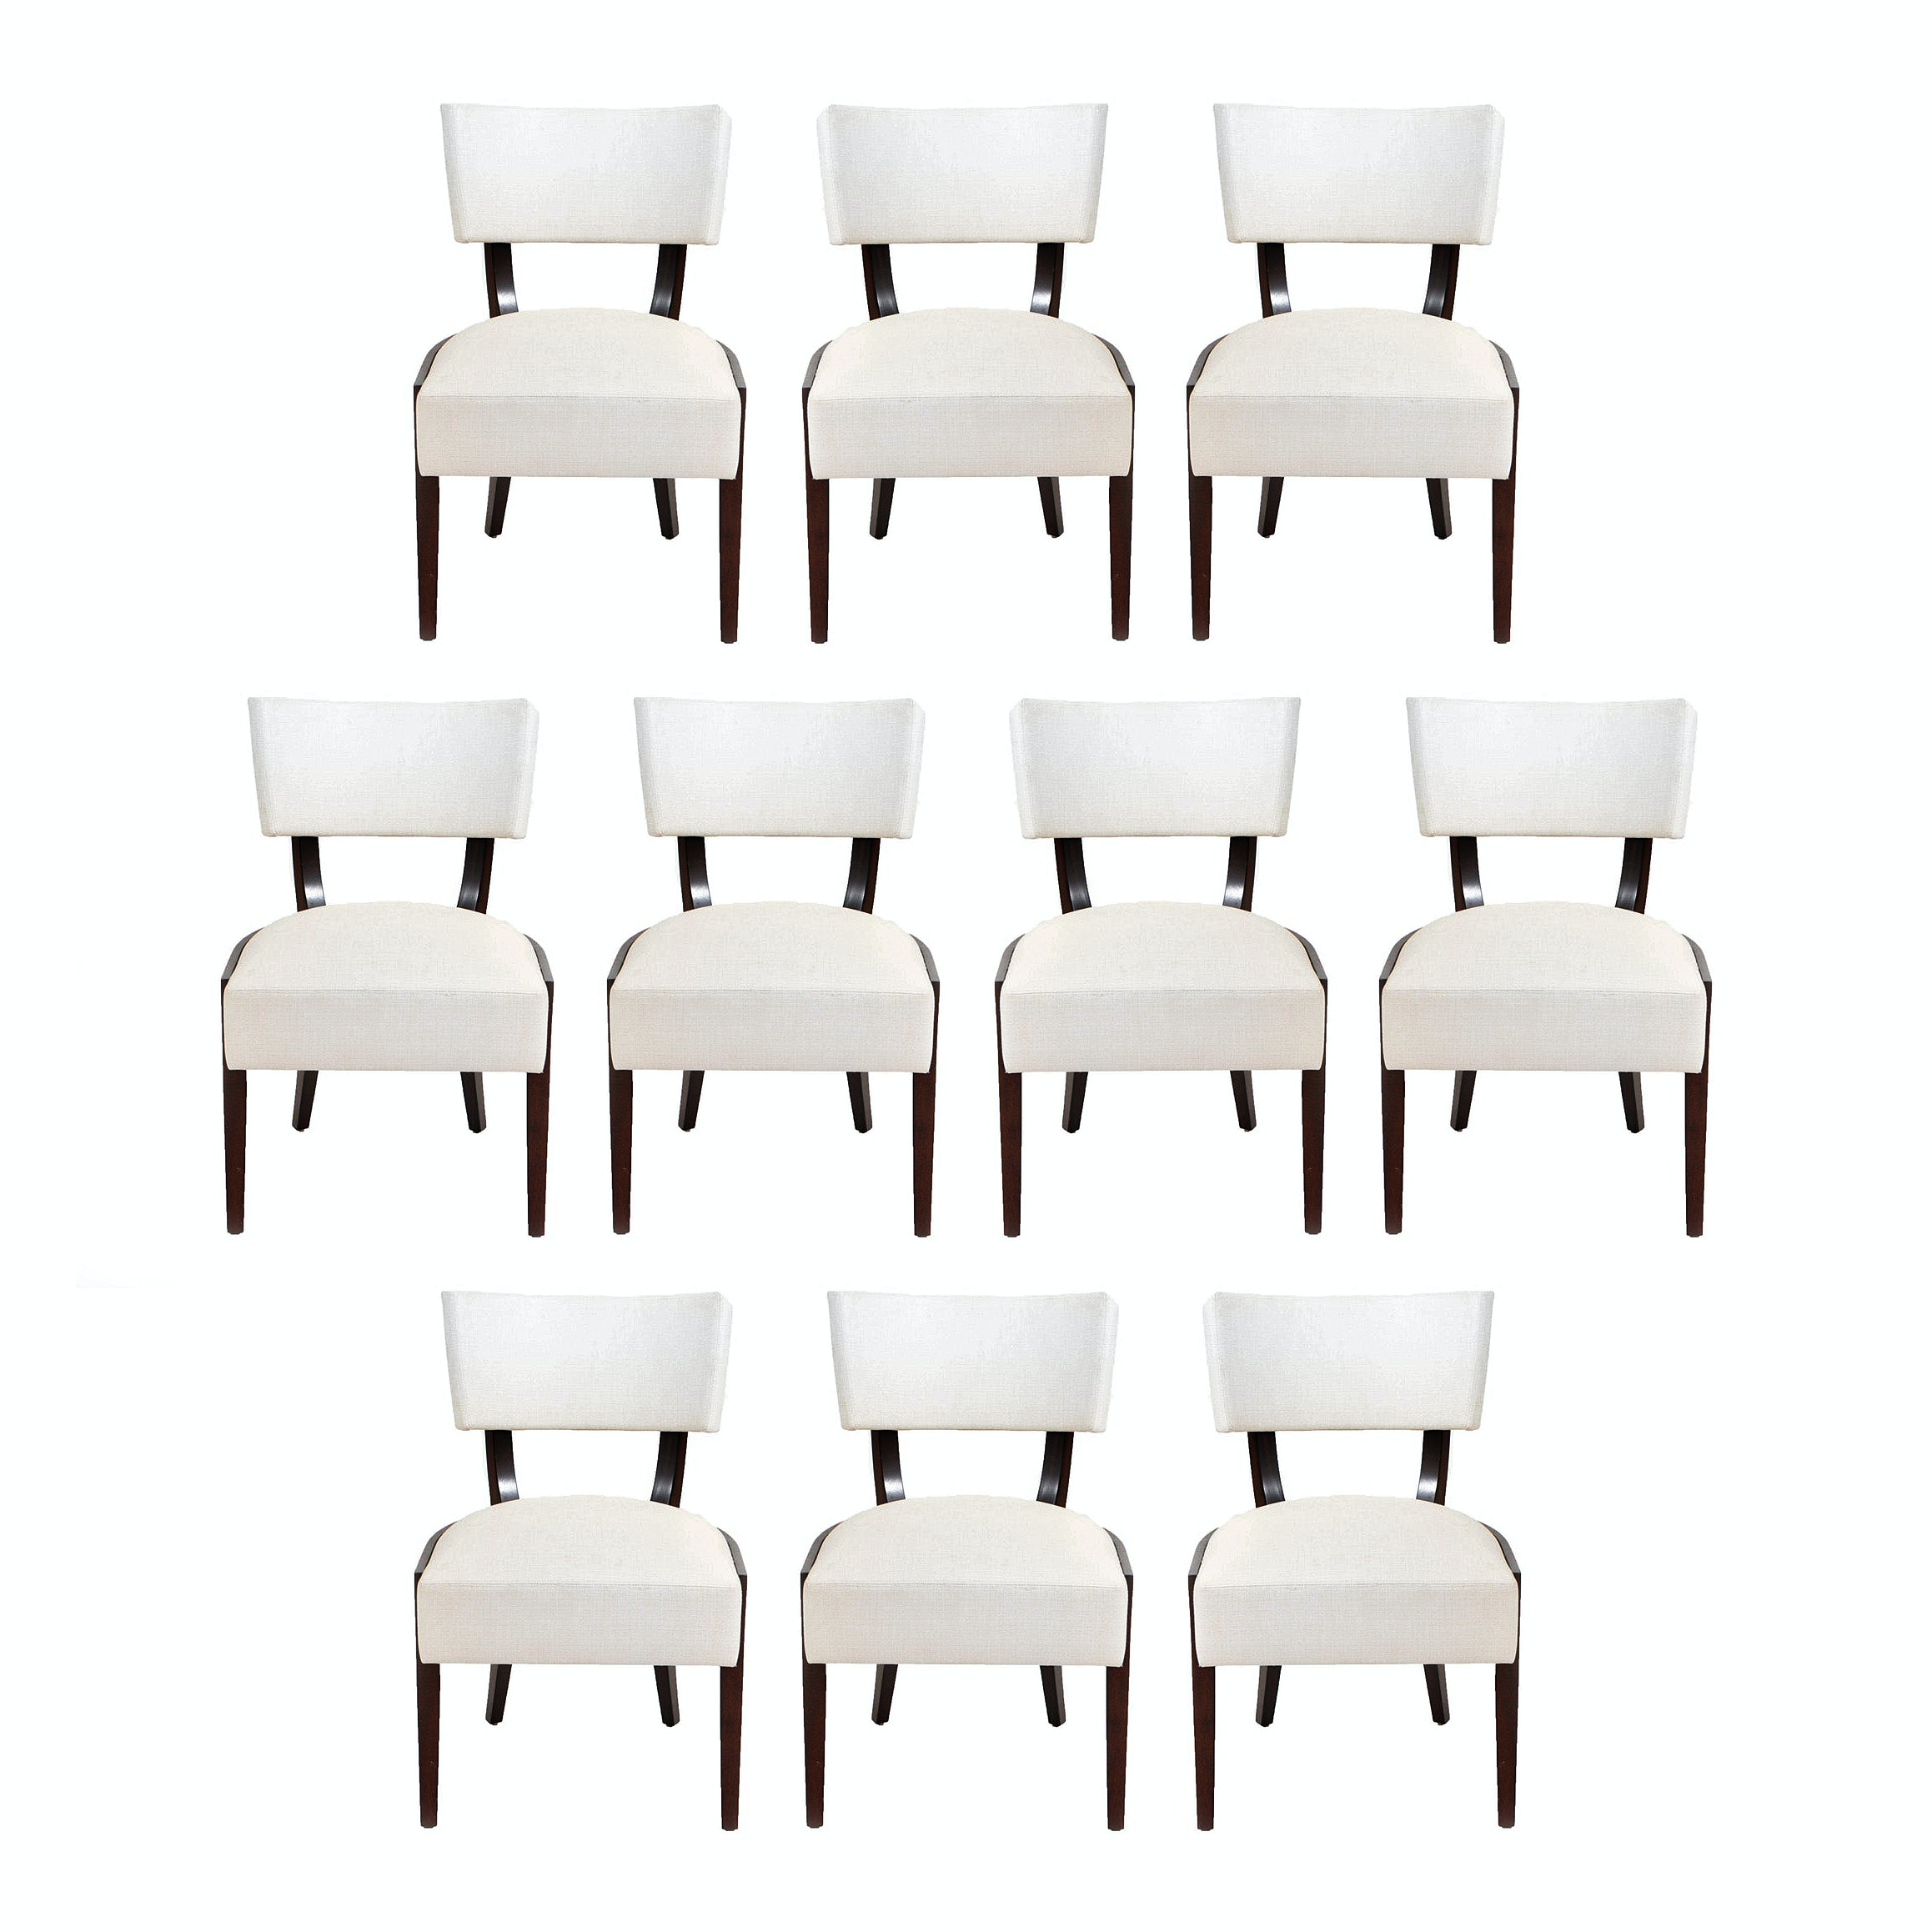 "Troscan ""Danta"" Dining Chairs in Custom Upholstery"